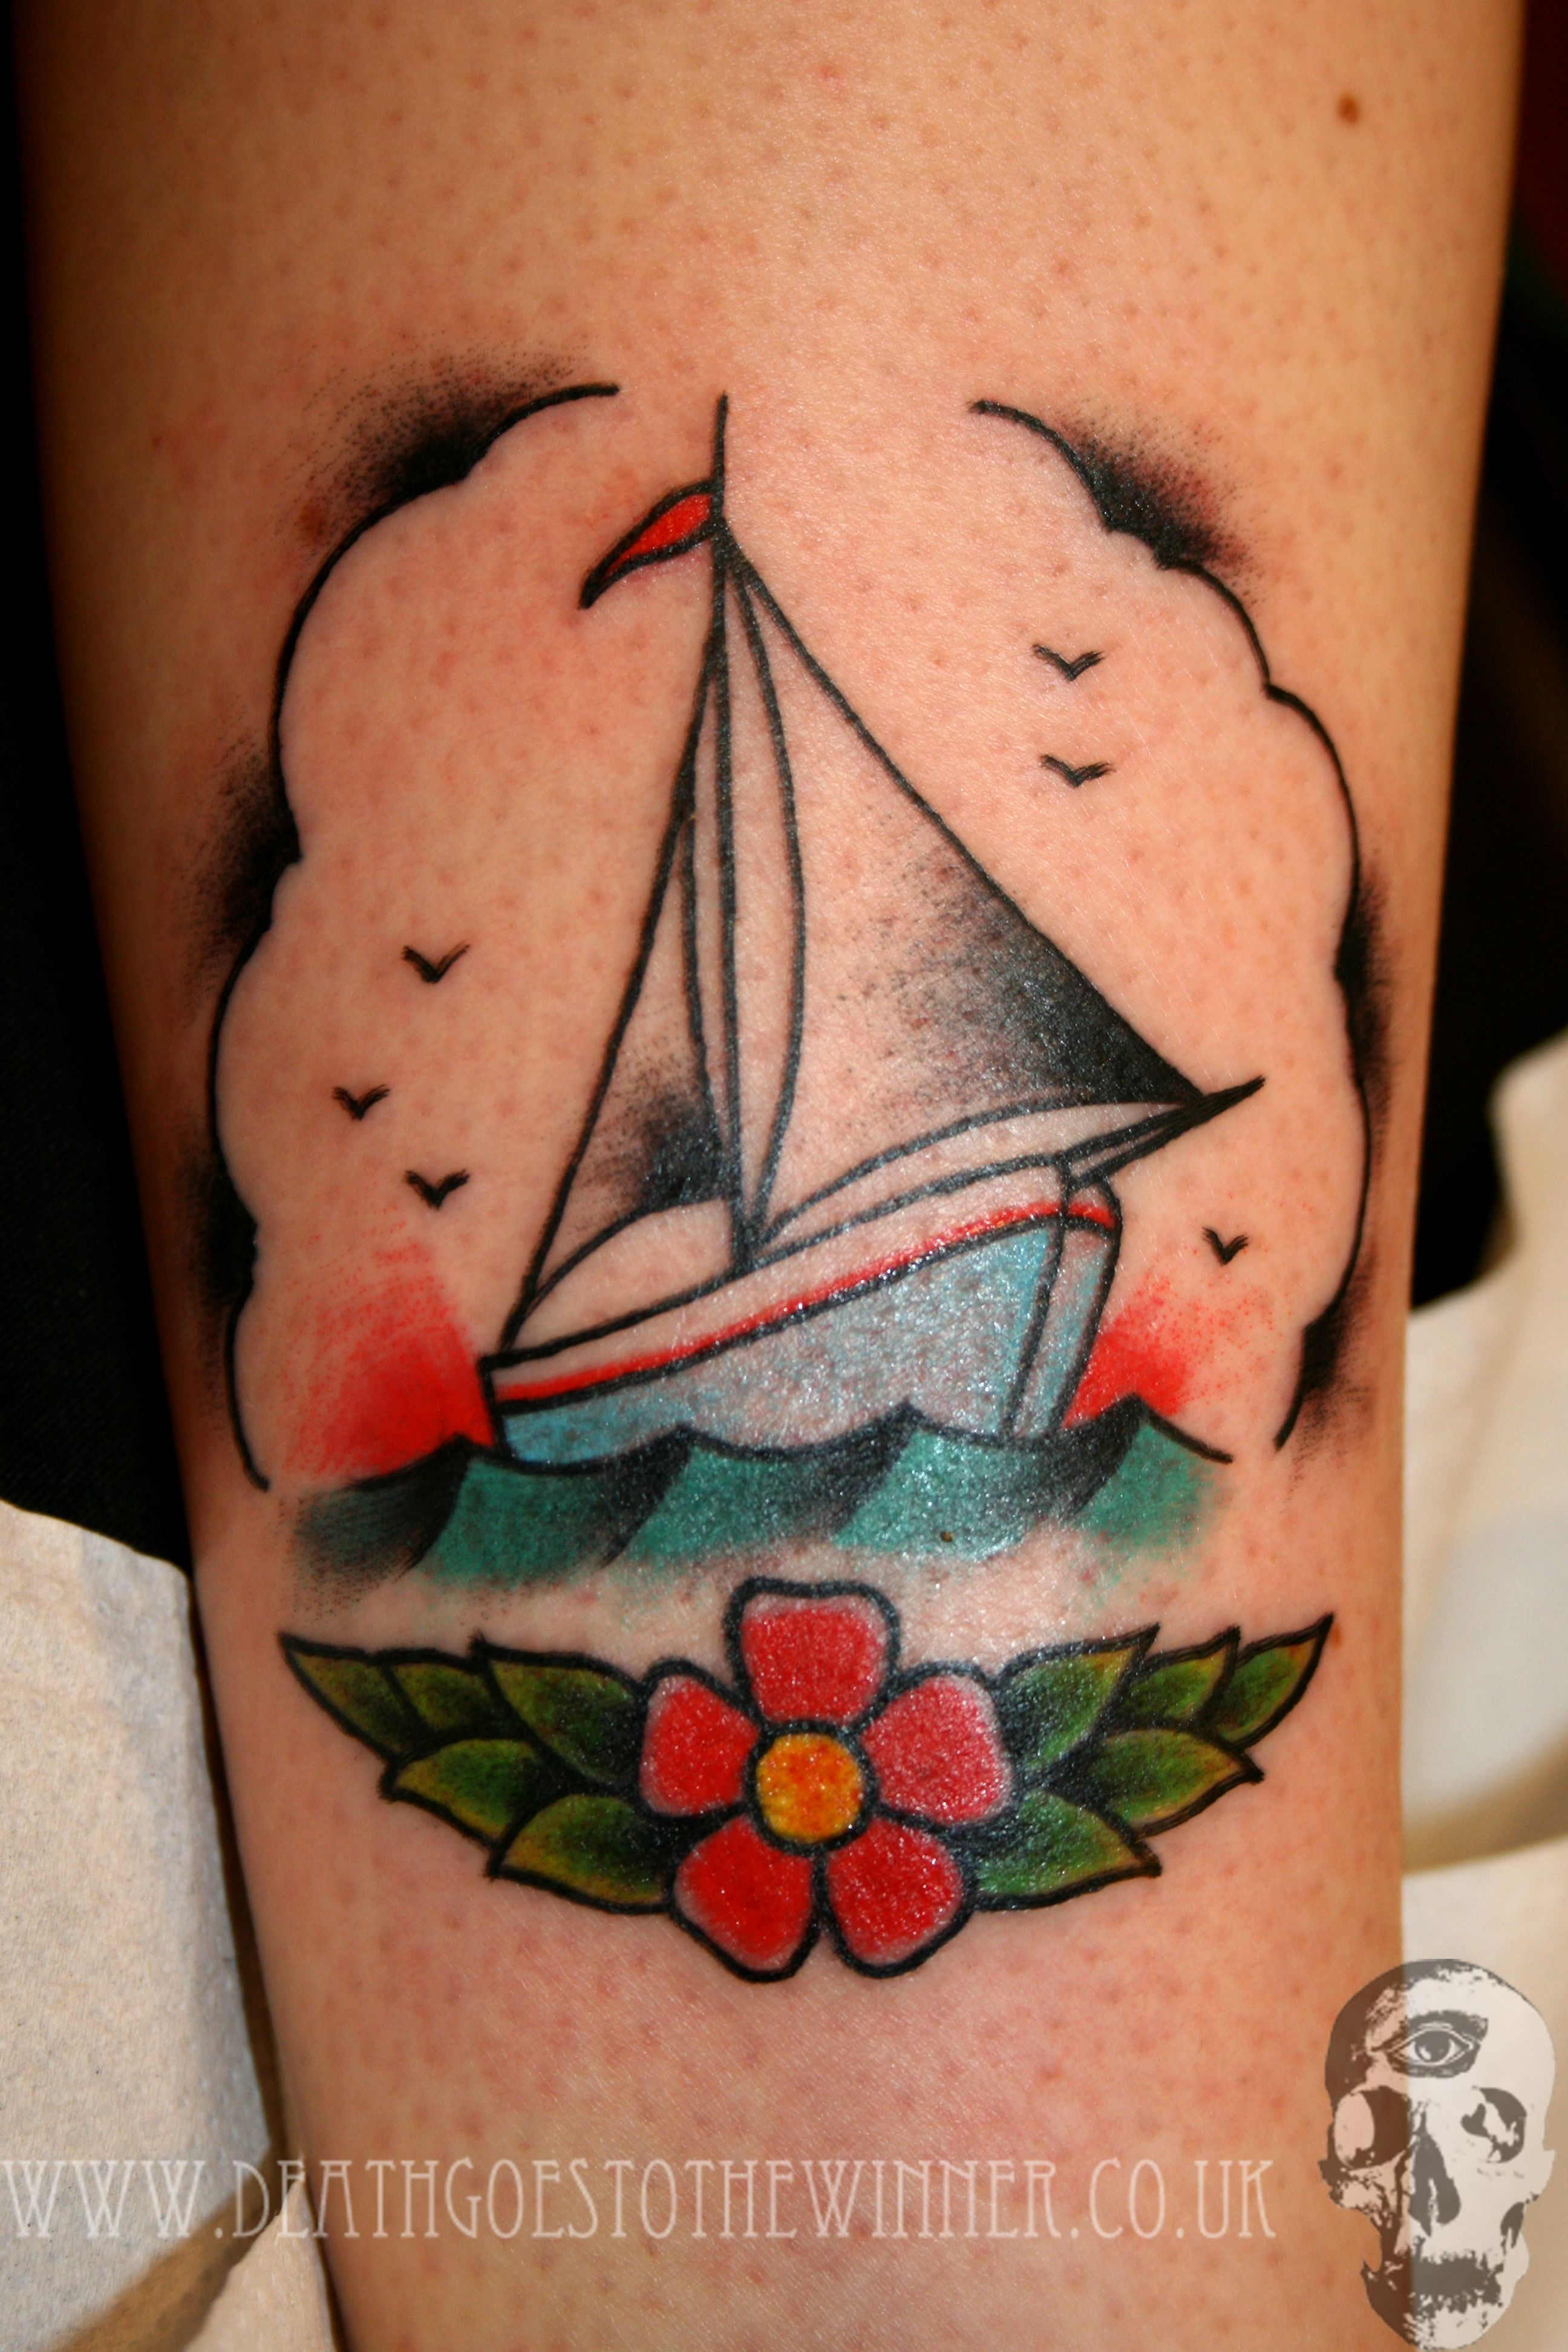 Come sail away tattoo inspiration pinterest tattoo for Where do tattoos come from